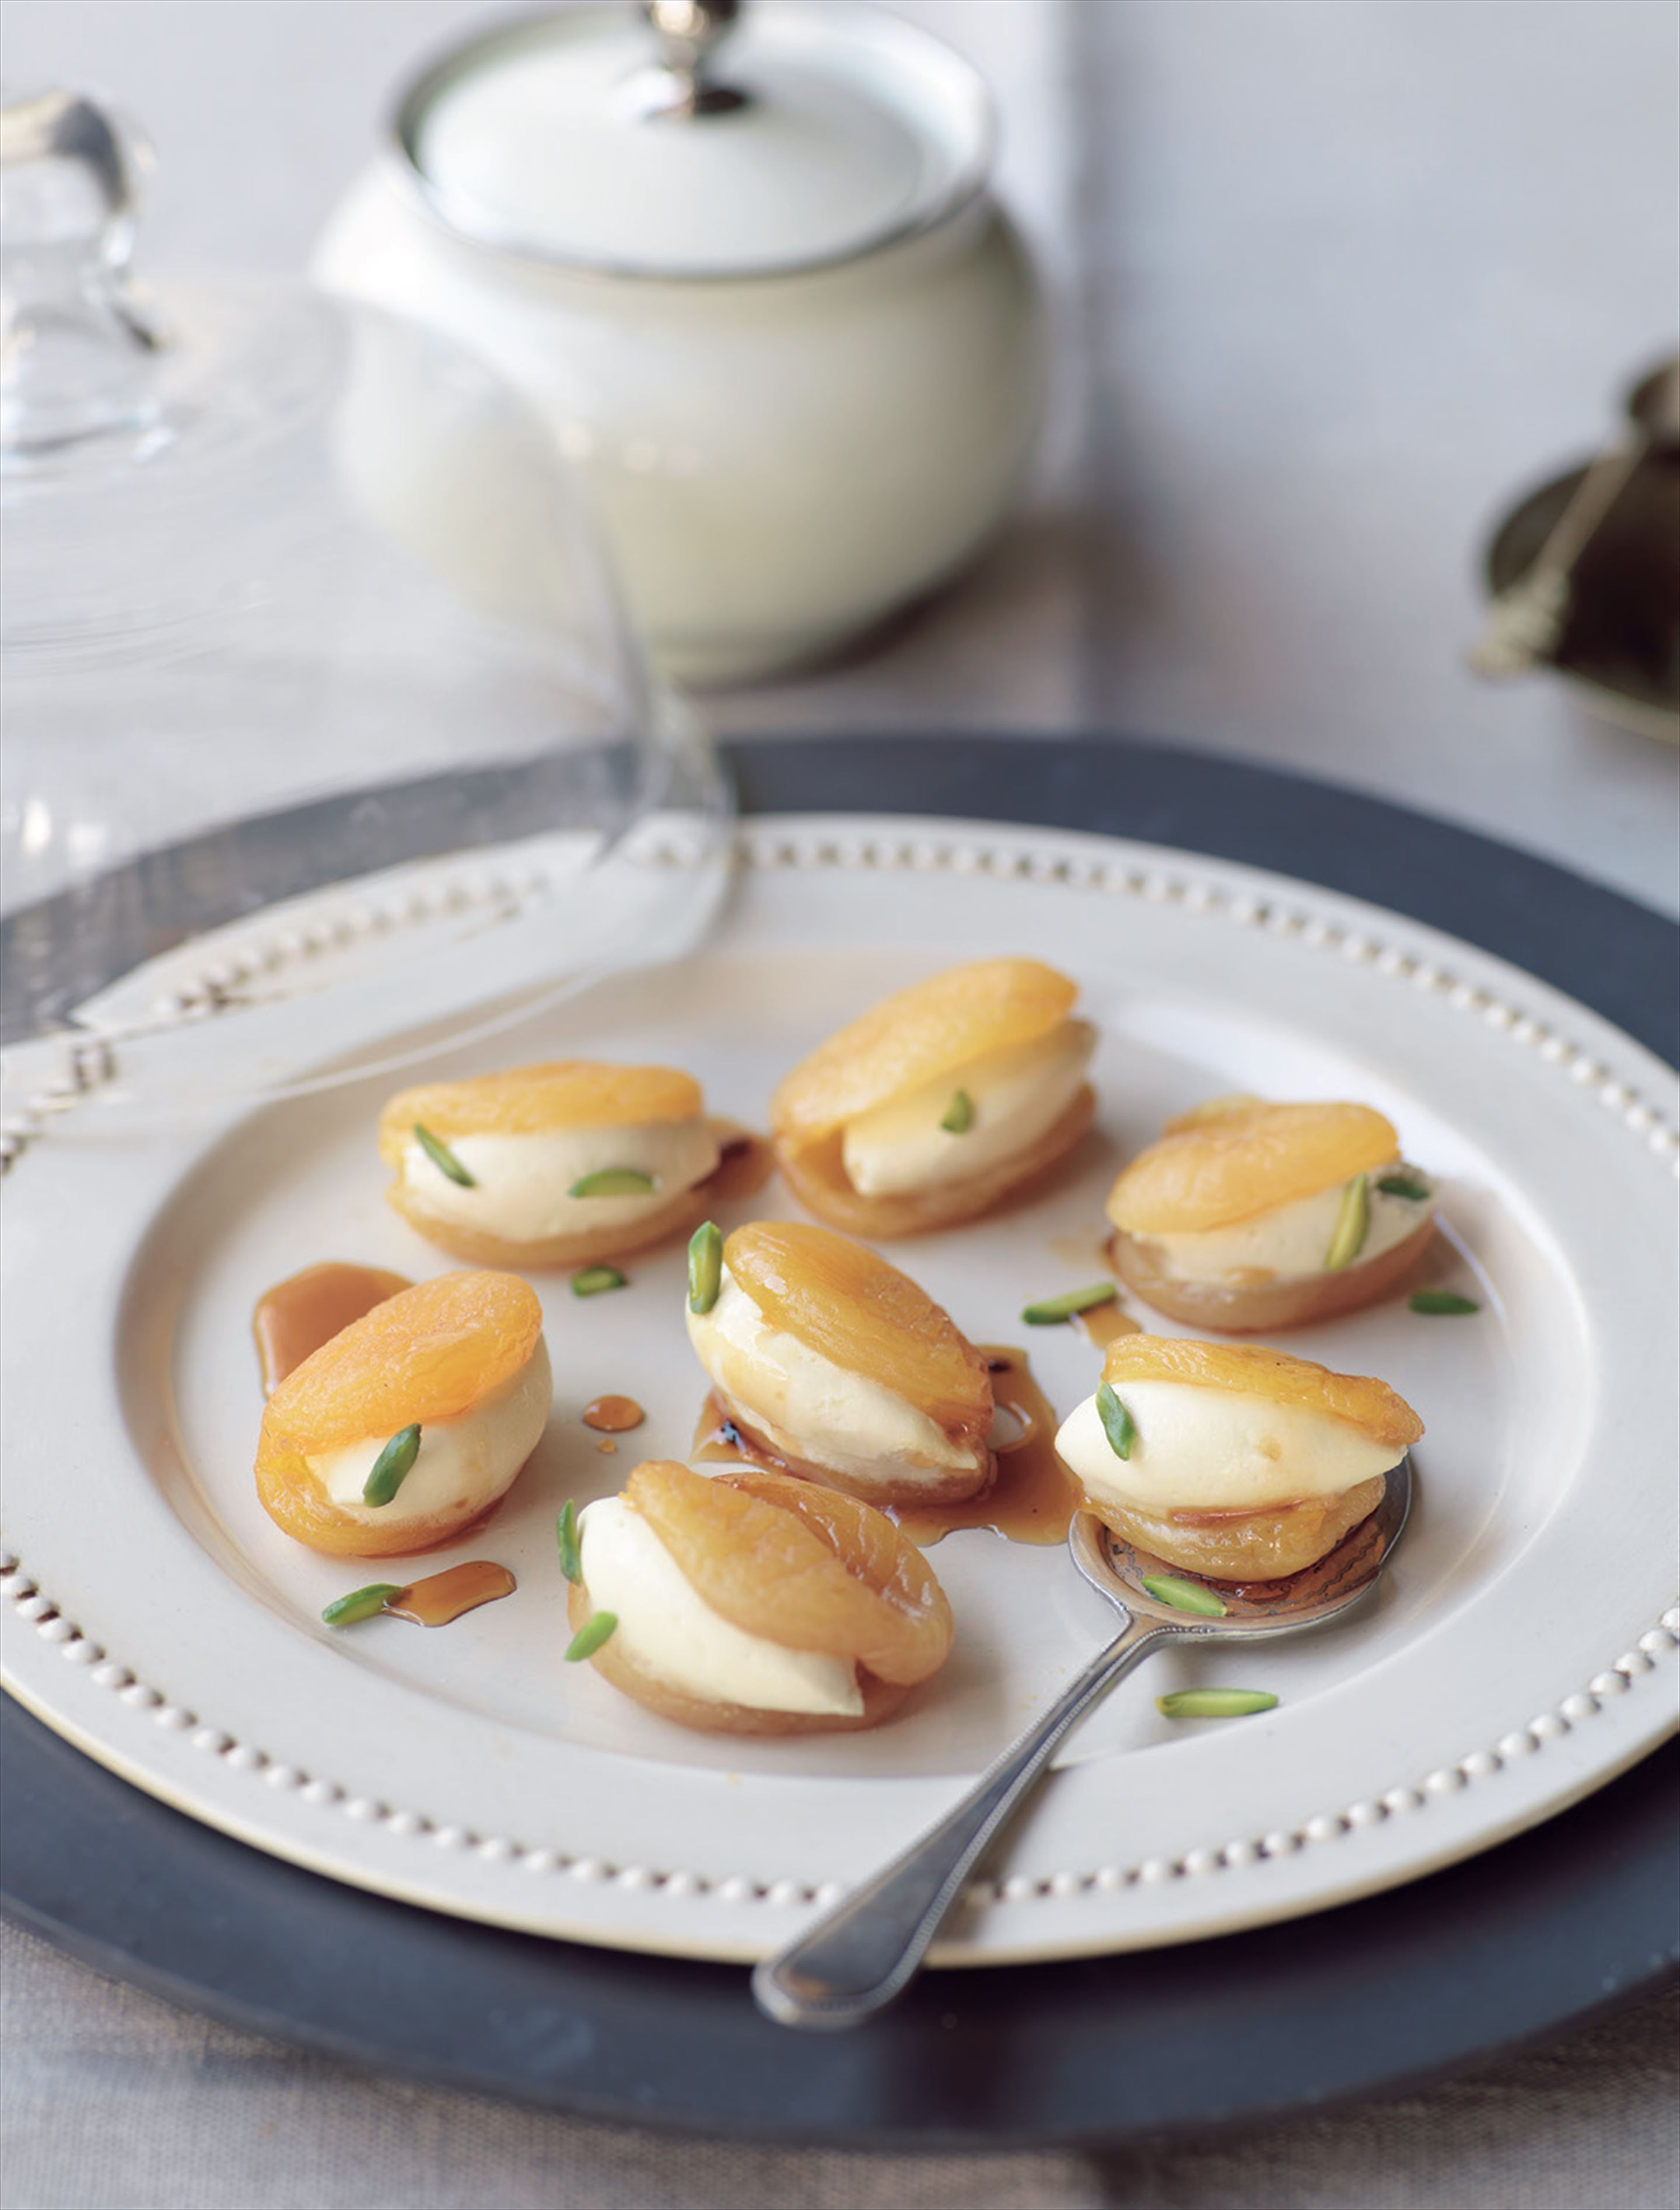 Sticky apricots stuffed with clotted cream